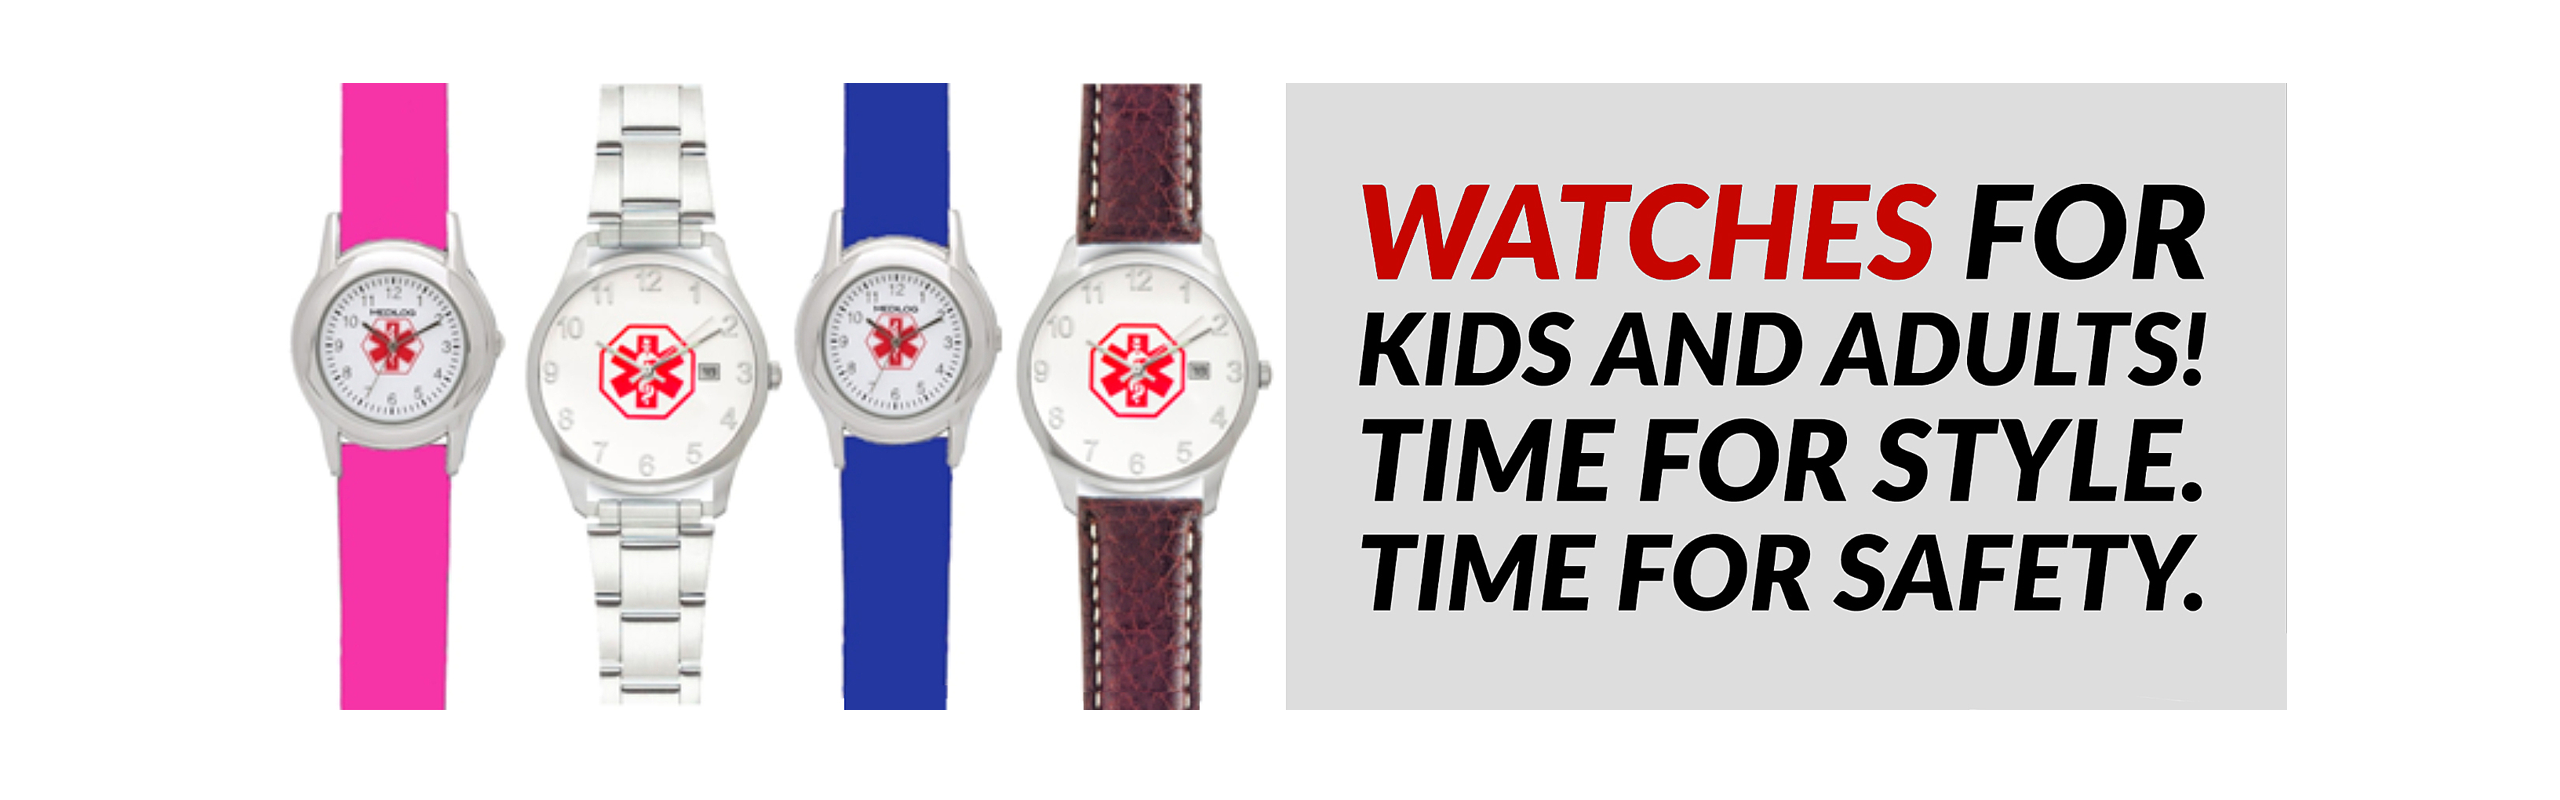 Stylish Medical ID Watches